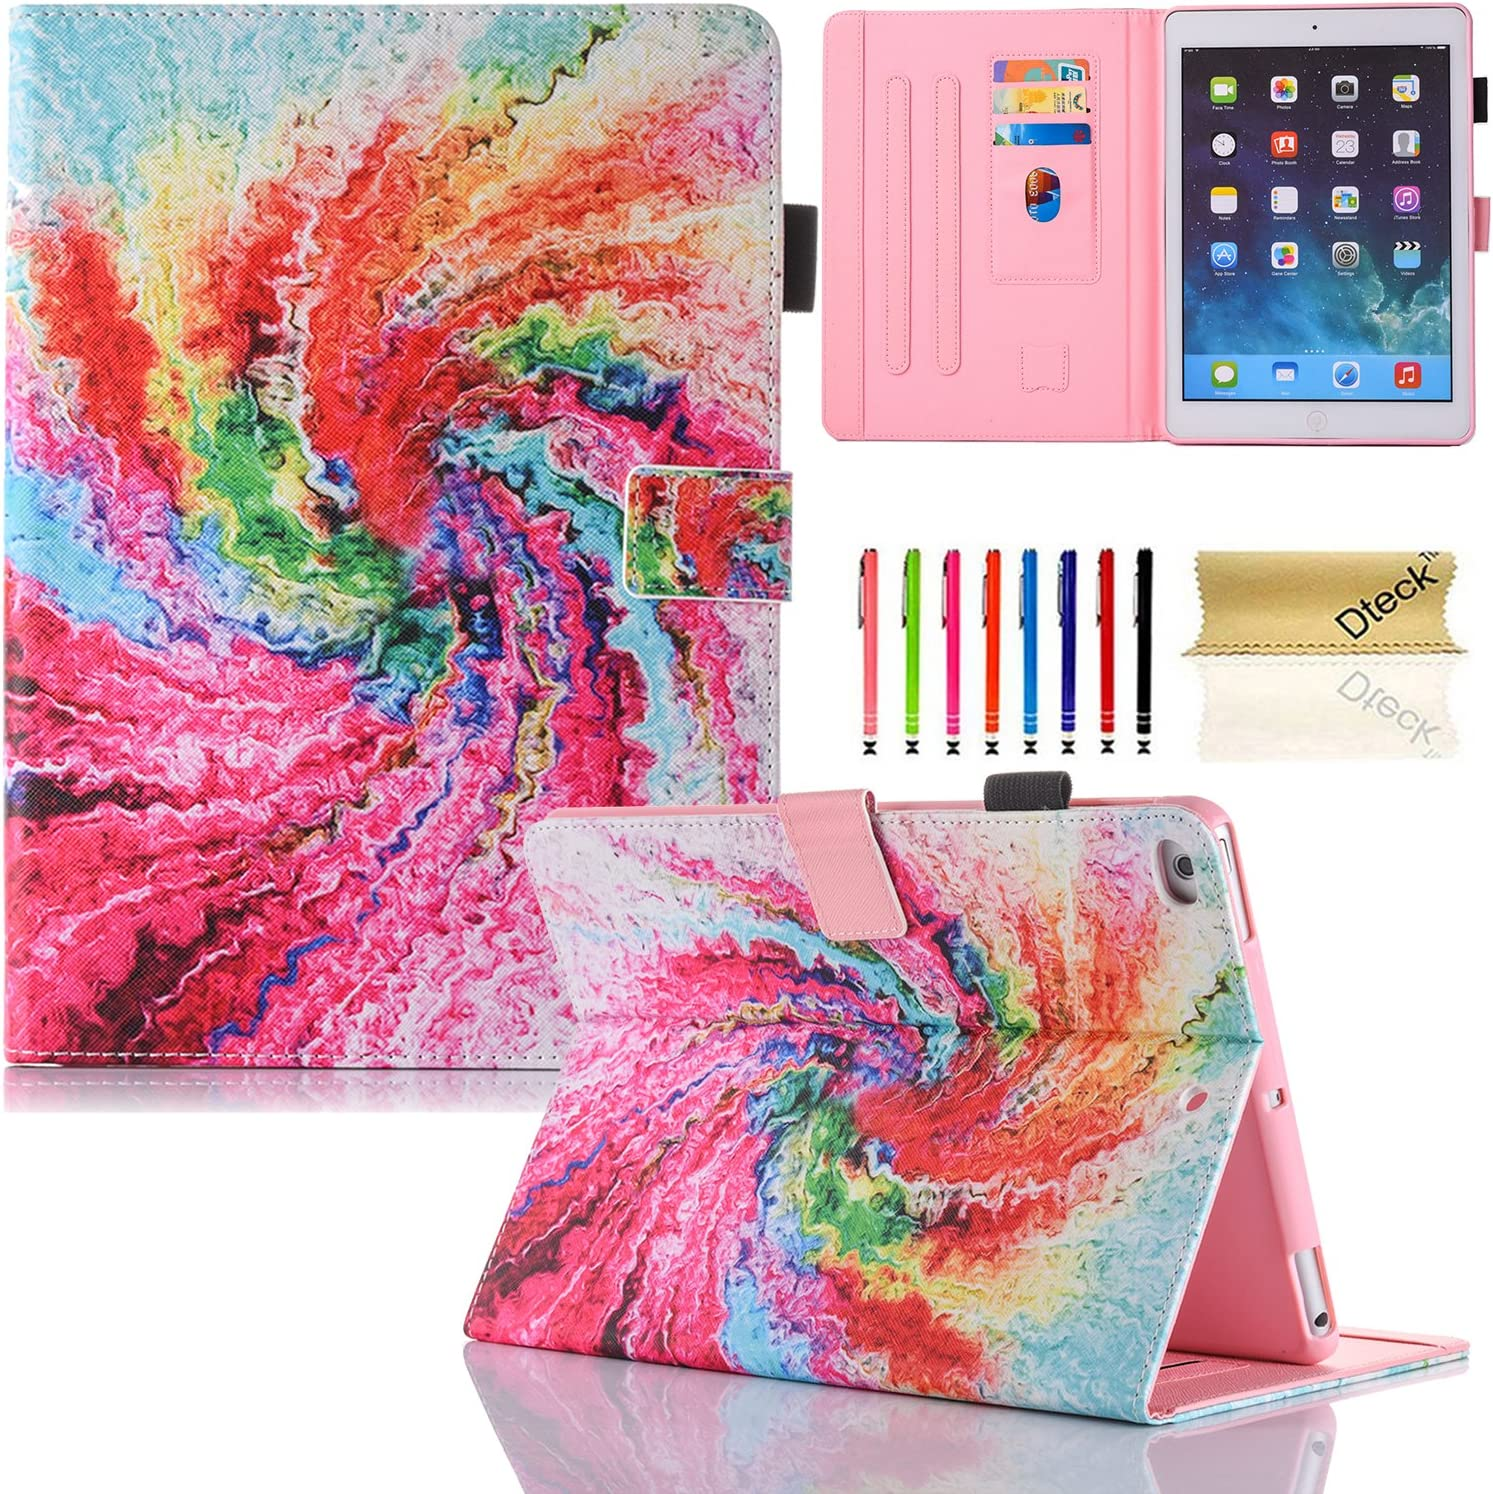 Dteck iPad Mini 1 2 3 4 Case - Slim Fit PU Leather Flip Stand Cover with Auto Sleep Wake Feature Smart Case for Apple iPad Mini 1/2/3/4 Generation, Rainbow Cake